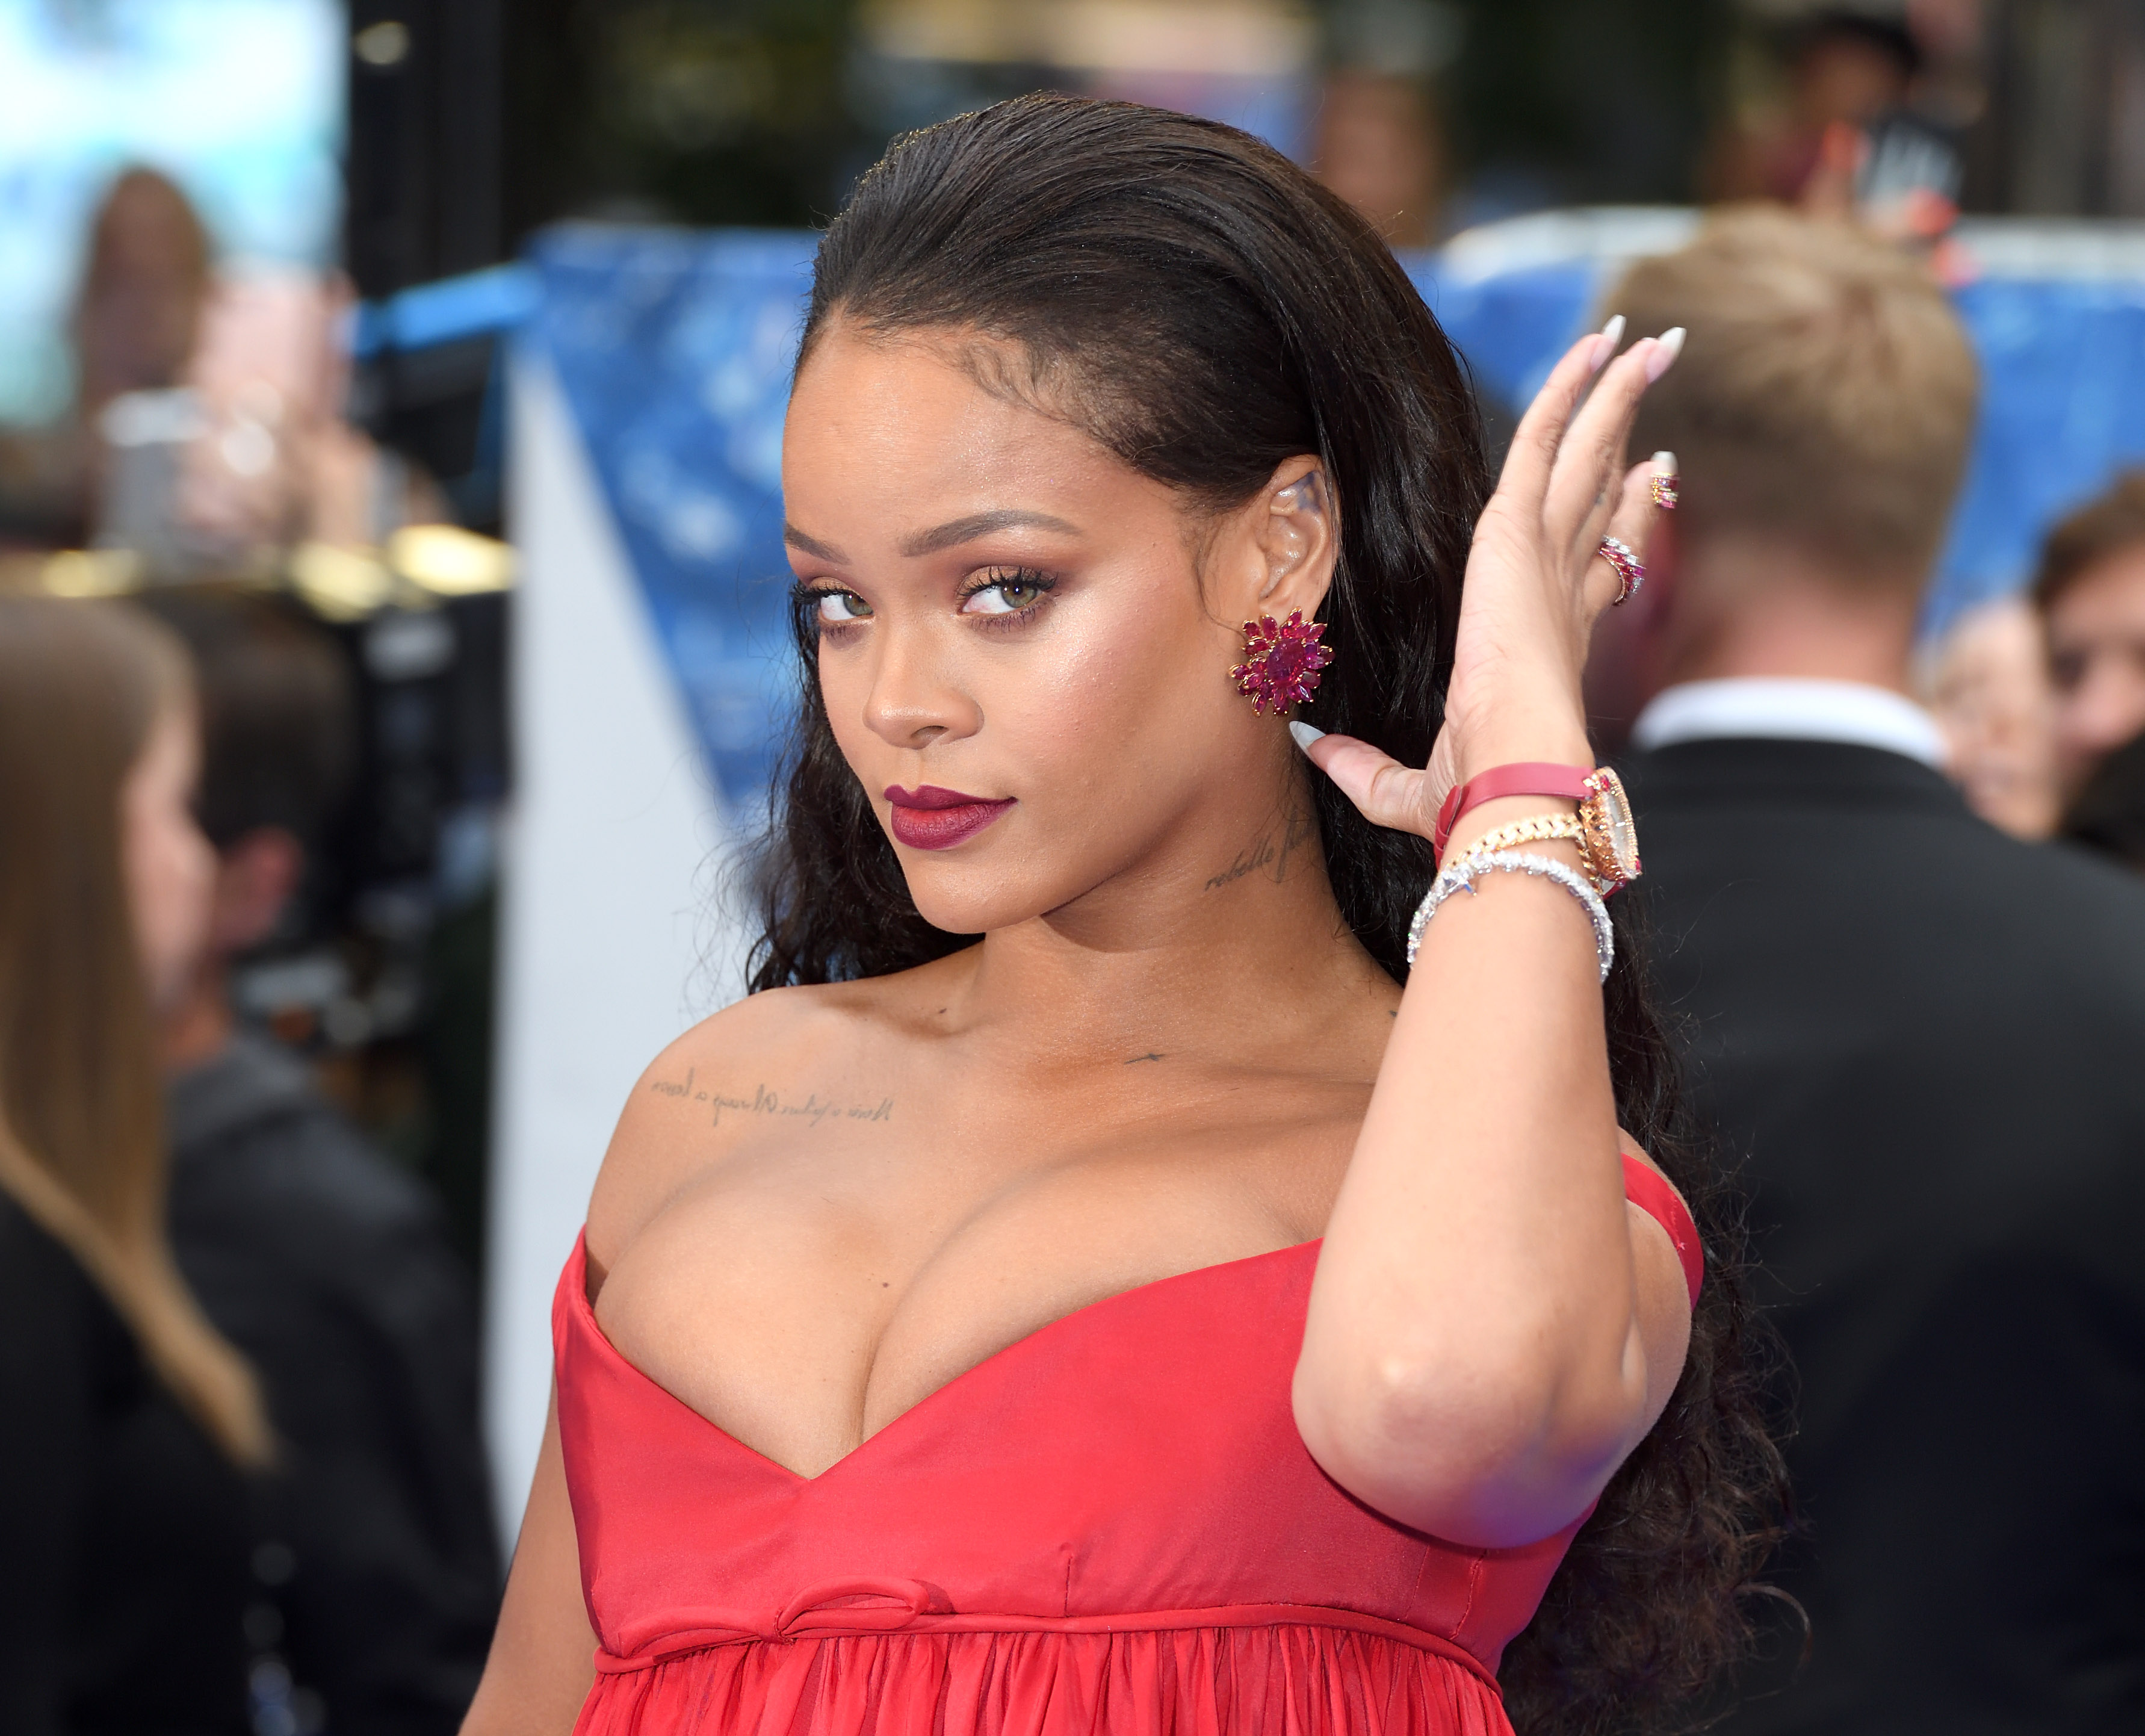 LONDON, ENGLAND - JULY 24:  Rihanna attends the  Valerian And The City Of A Thousand Planets  European Premiere at Cineworld Leicester Square on July 24, 2017 in London, England.  (Photo by Karwai Tang/WireImage)